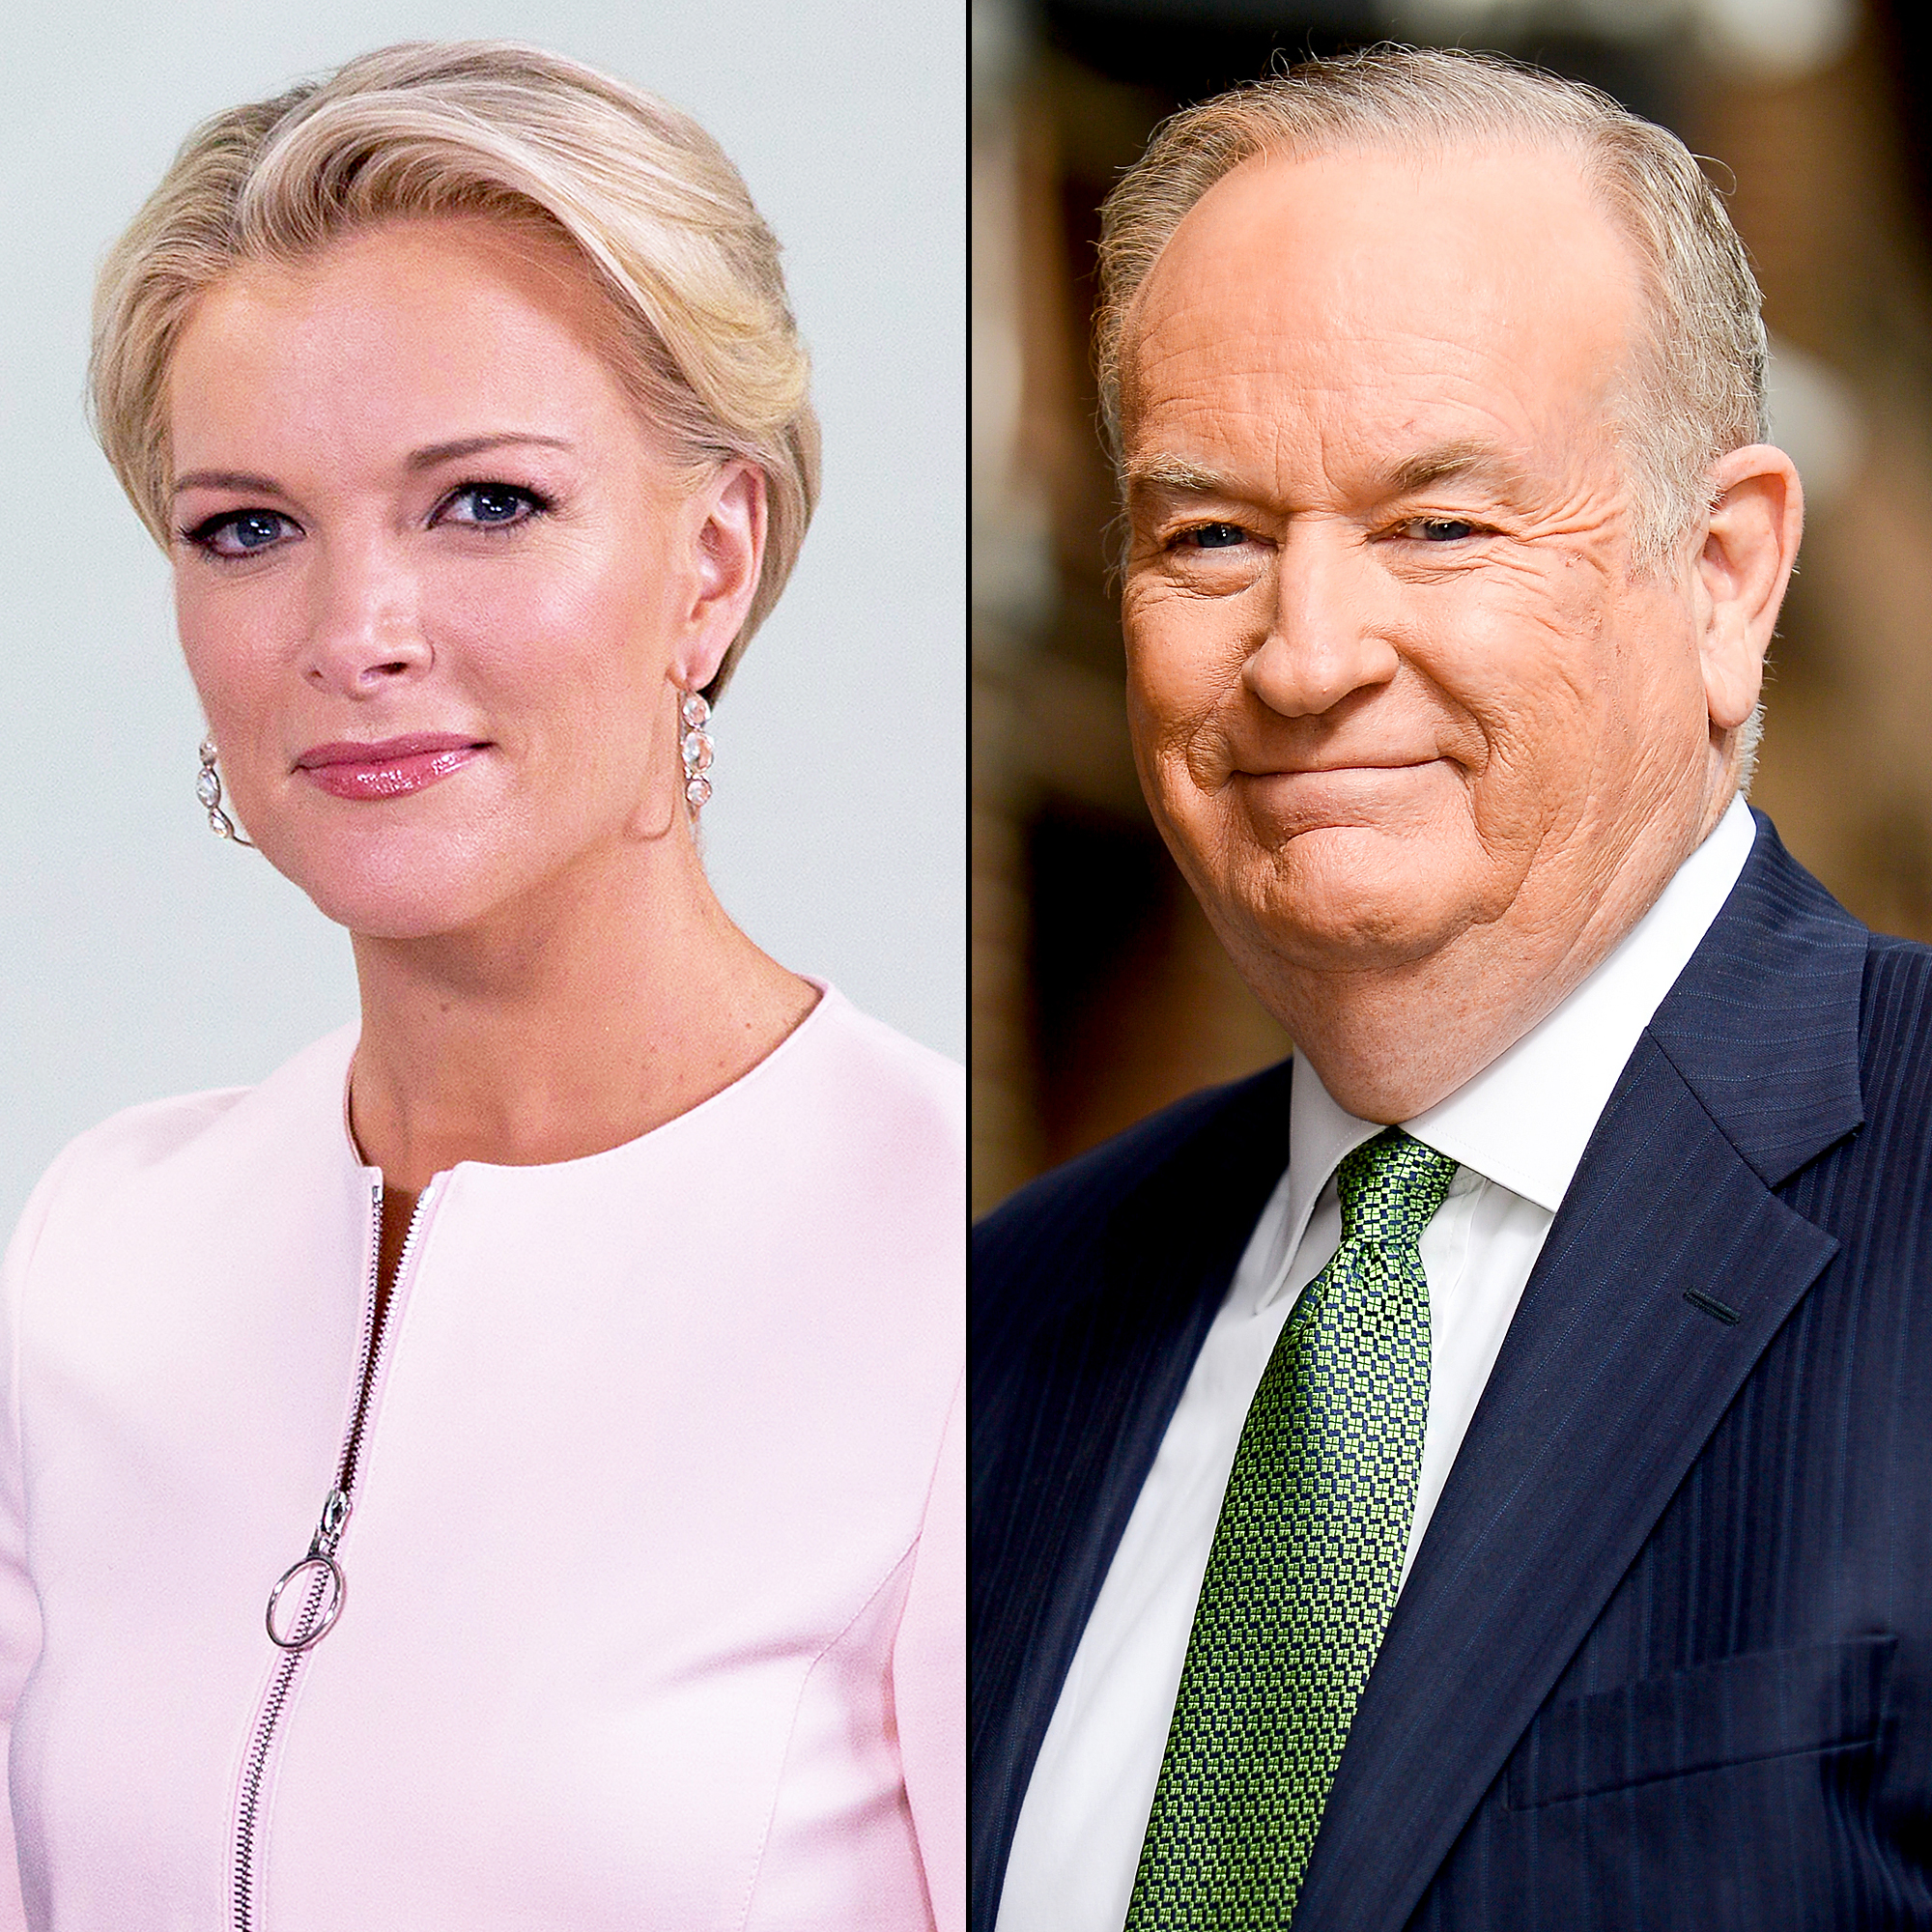 Megyn Kelly and Bill O'Reilly